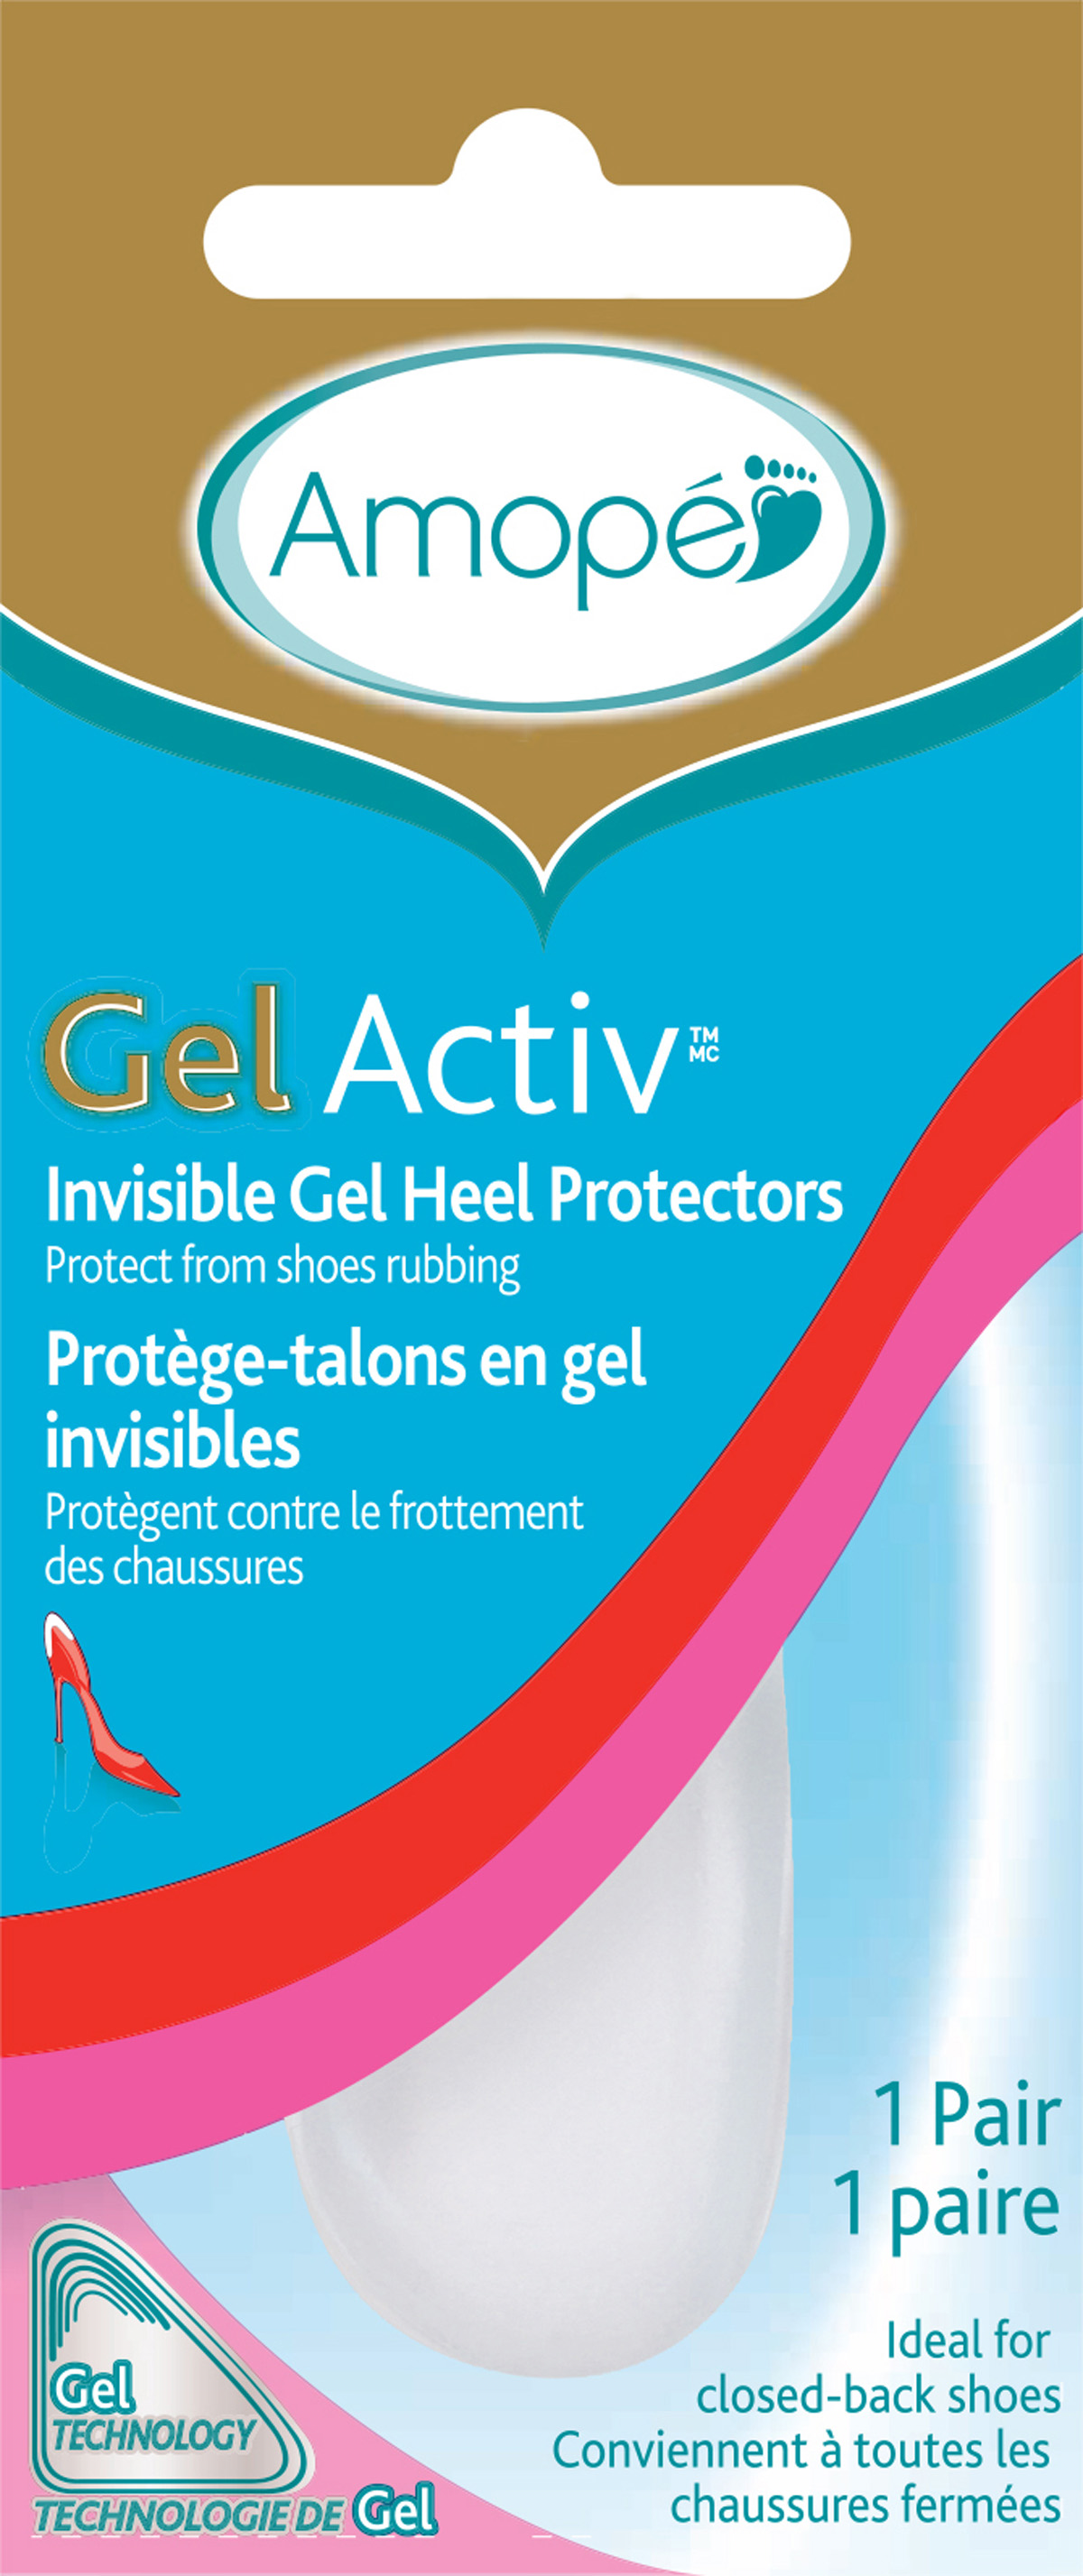 AMOPE GelActiv Invisible Gel Heel Protectors  Photo